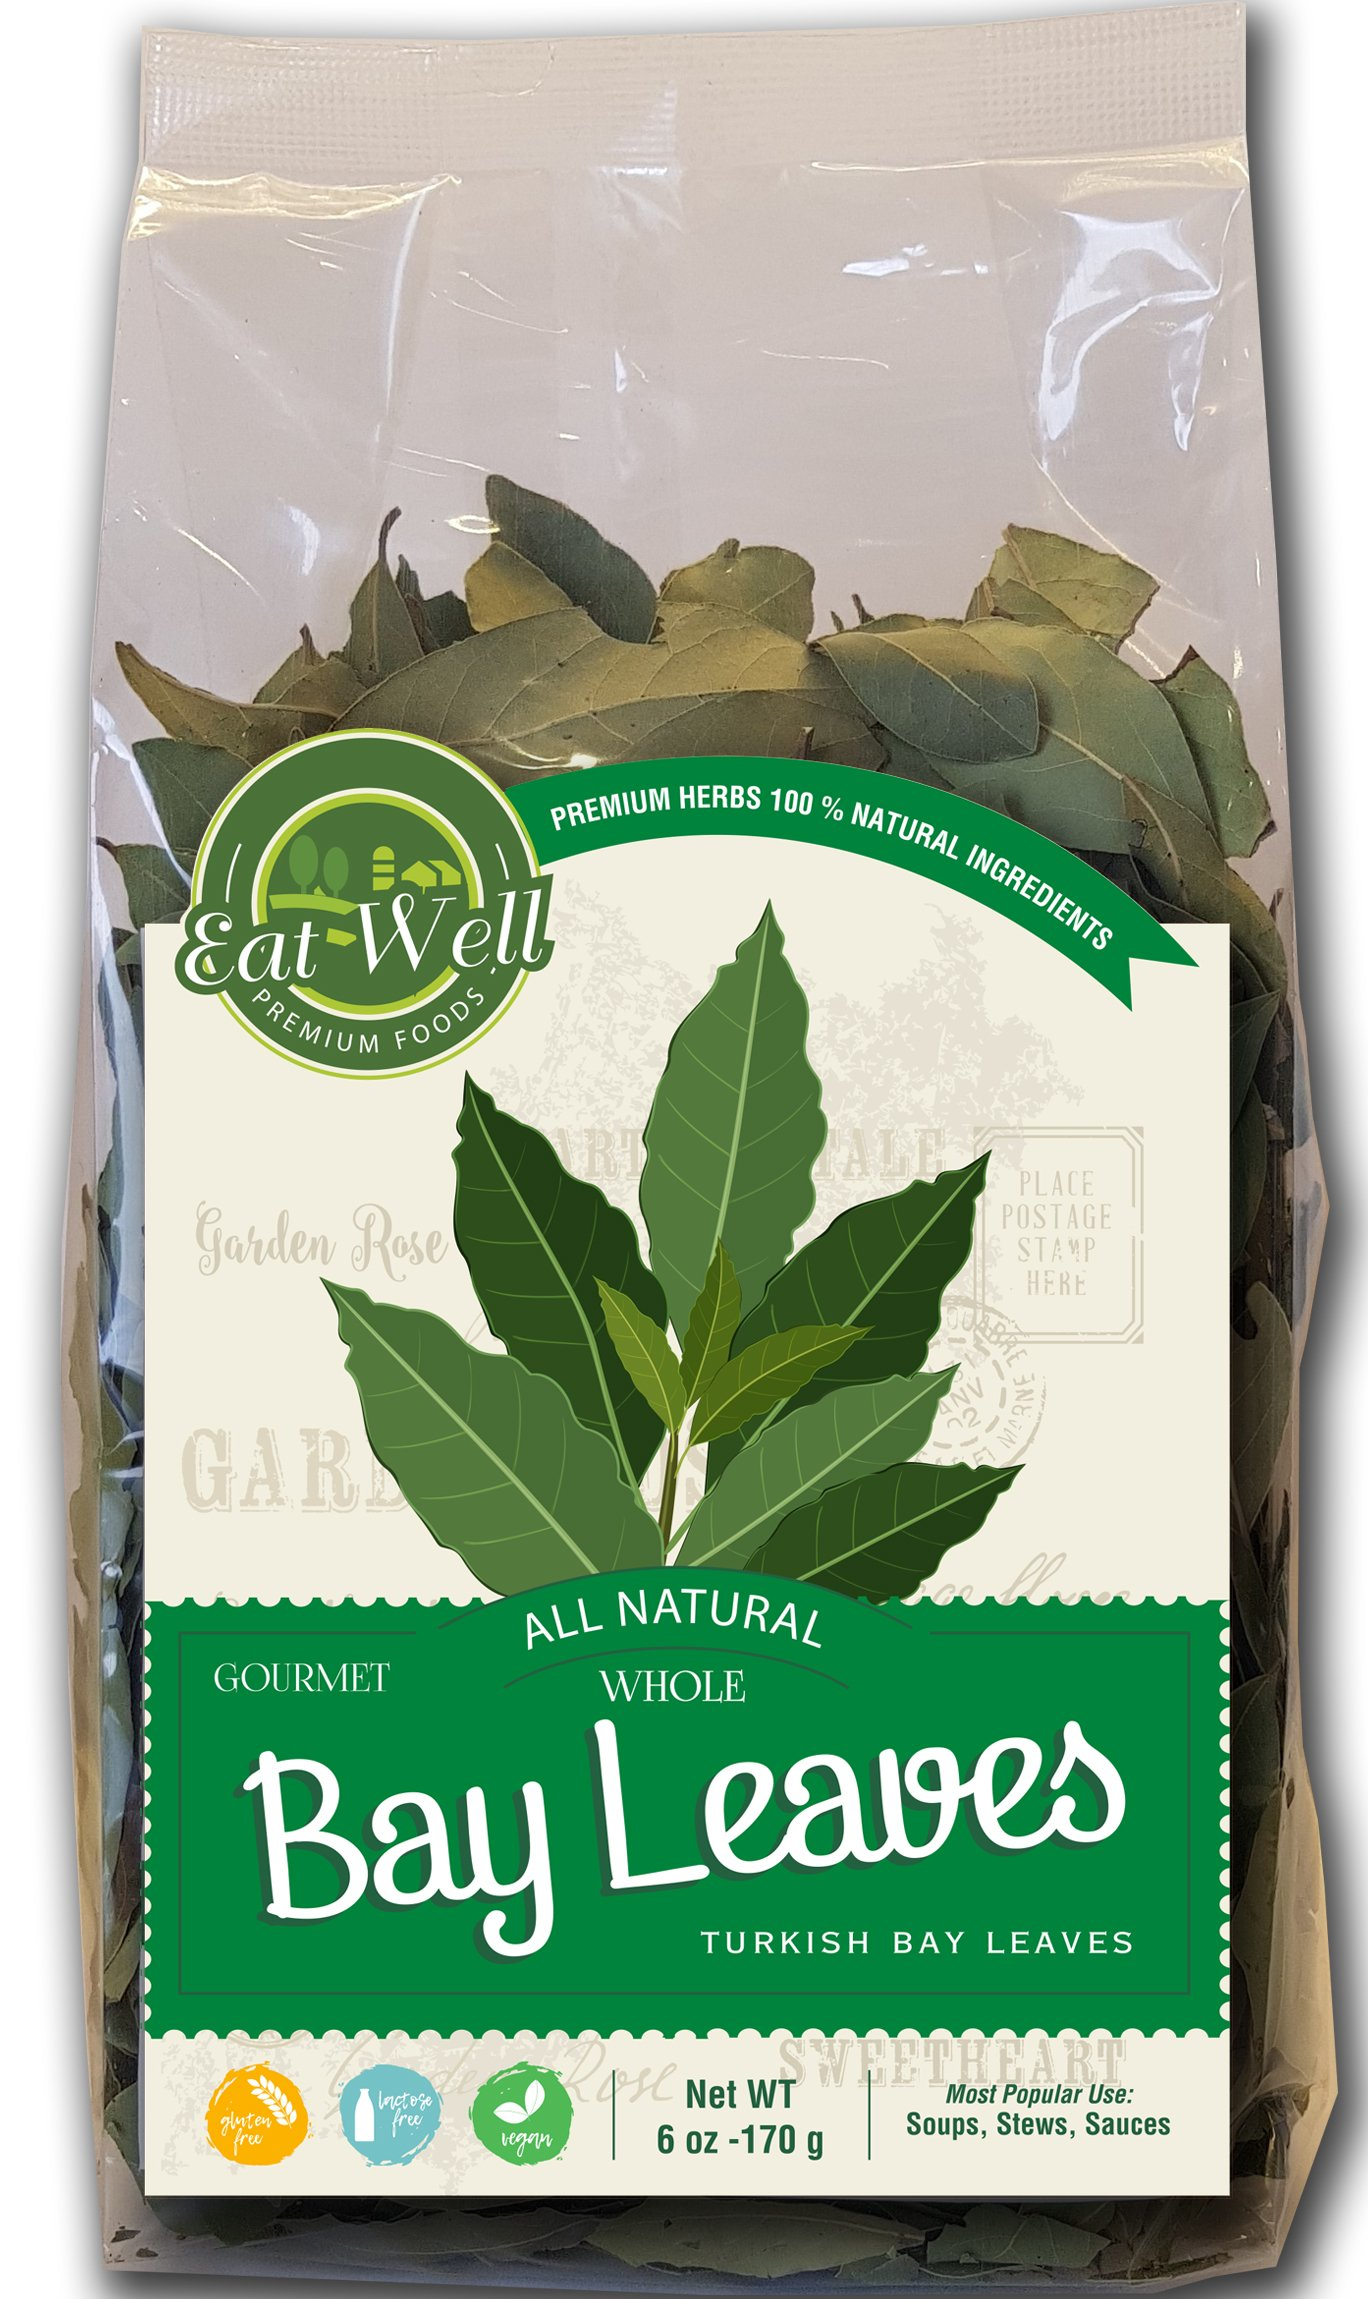 Turkish Bay Leaves Whole | 6oz Reseable Bag, Bulk | 100% Natural Dried Organic Leaf | Herbs & Spices | by Eat Well Premium Foods